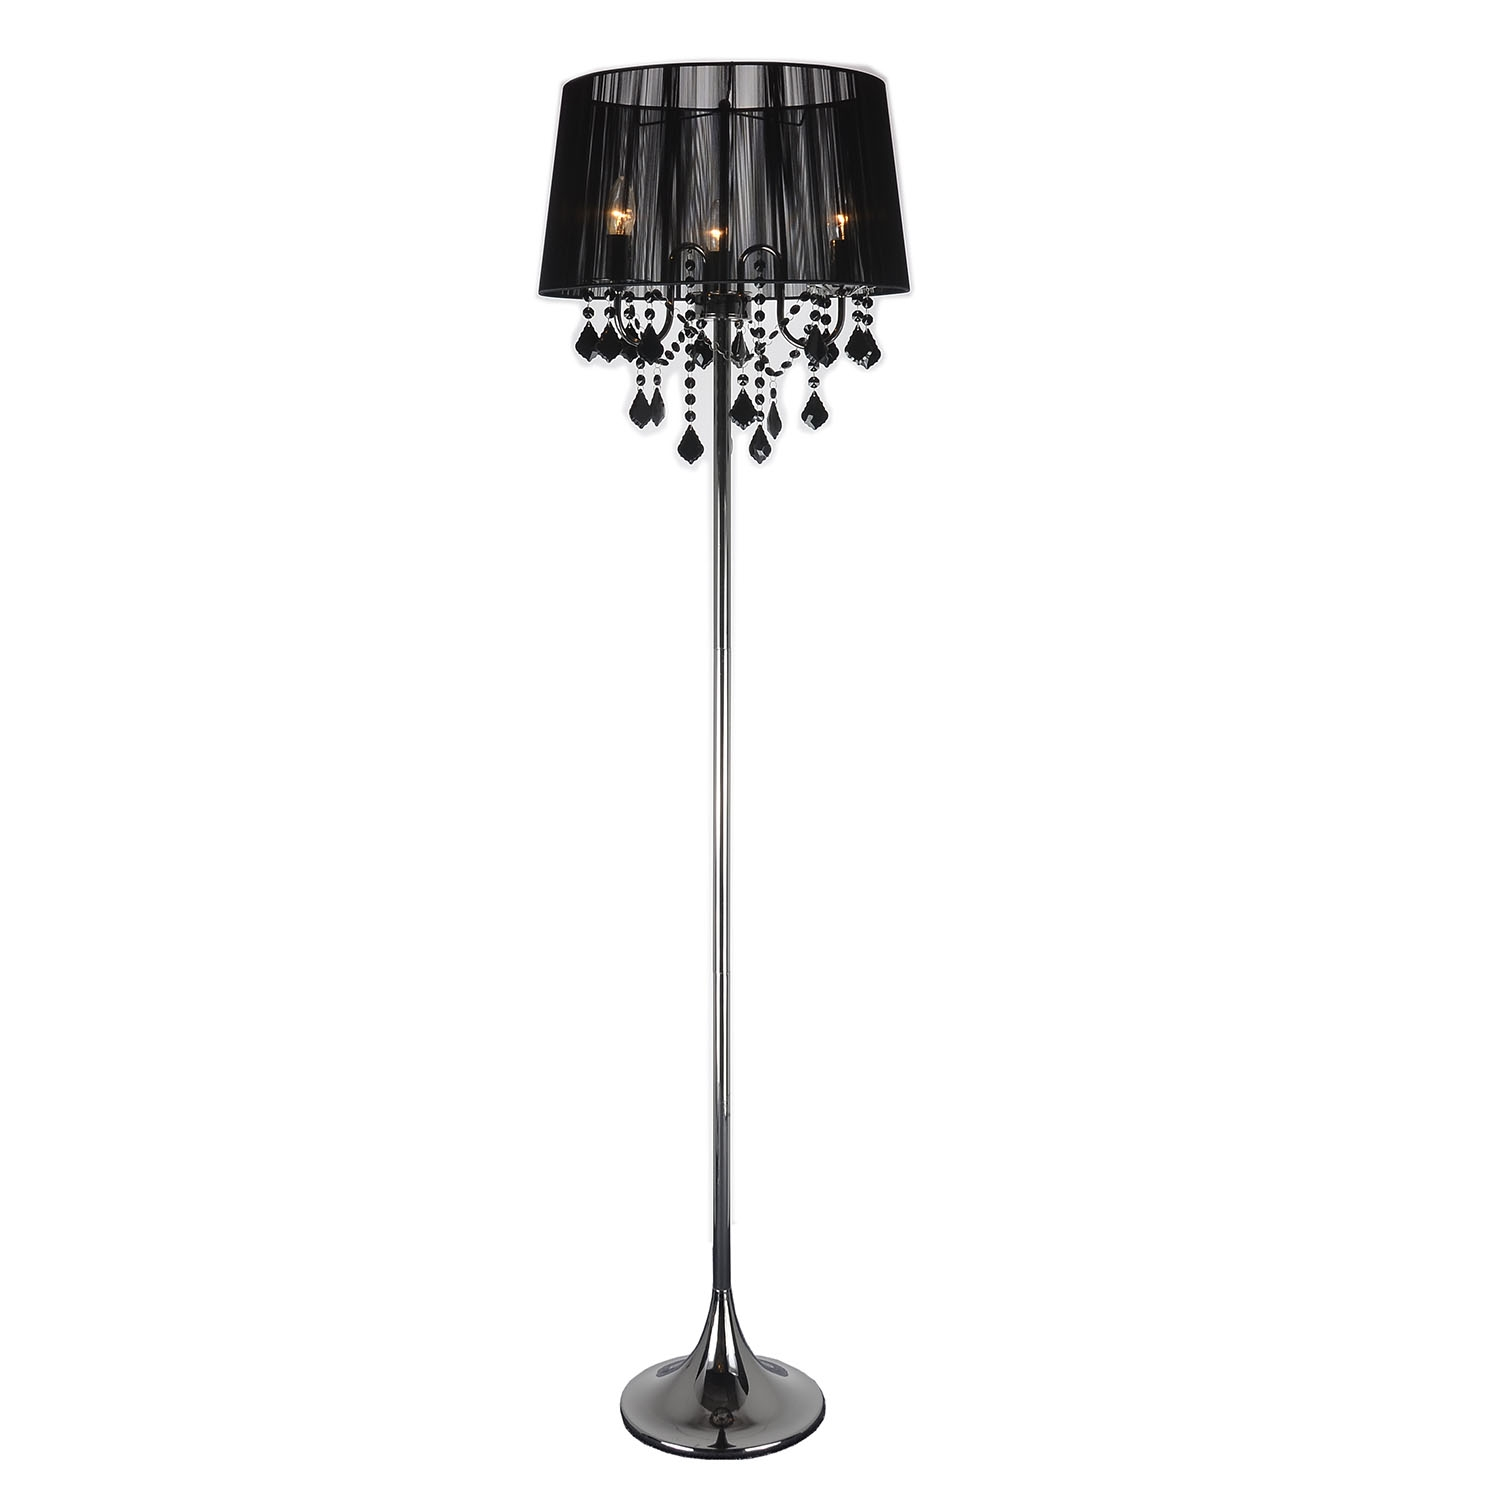 deco in paris lampadaire a pampilles en metal avec abat jour noir majesty majesty noir luminaire. Black Bedroom Furniture Sets. Home Design Ideas